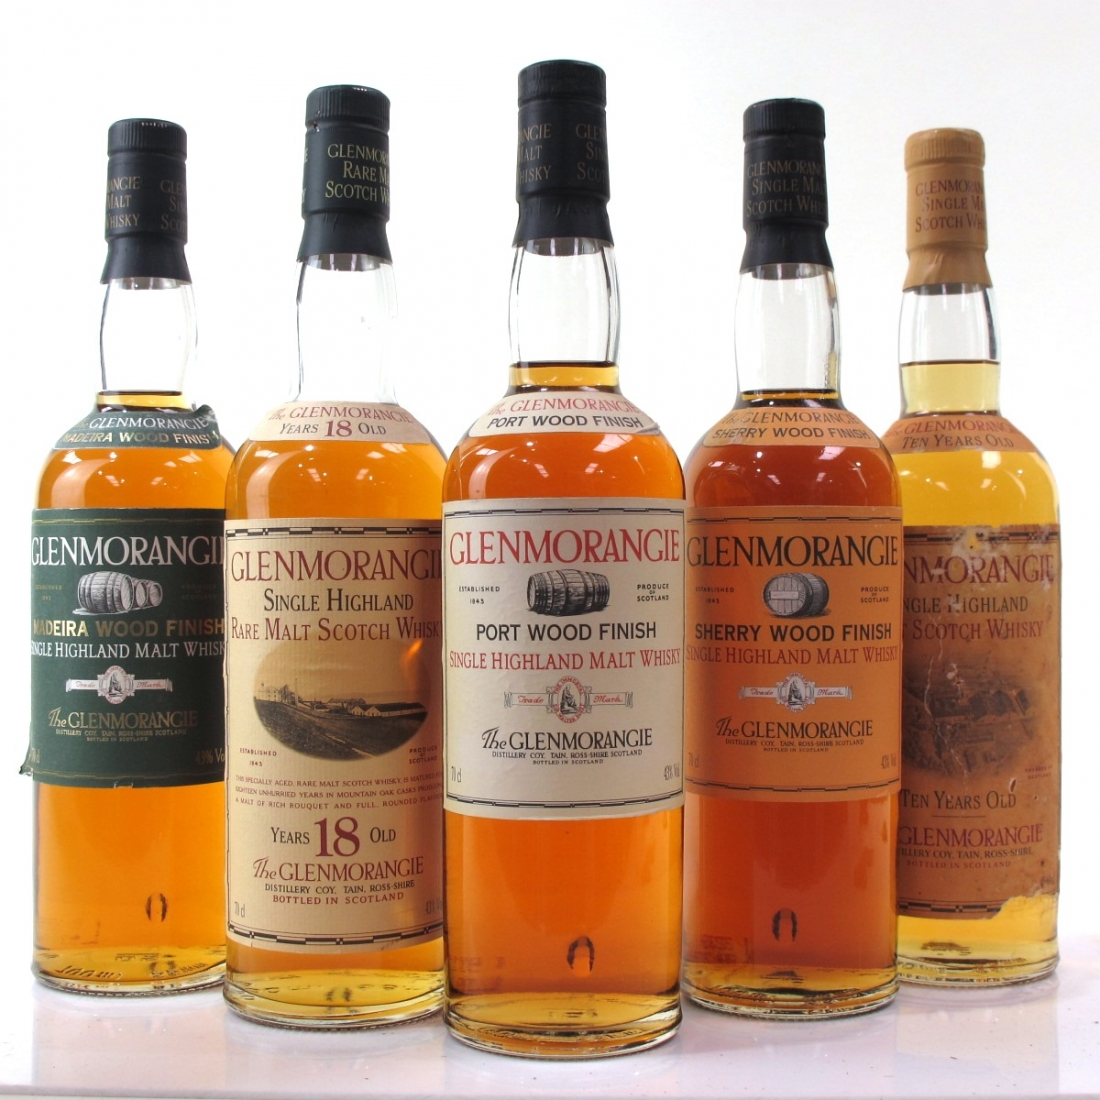 Glenmorangie Collection 5 x 70cl Including Plinth / Madeira Finish and 18 Year Old